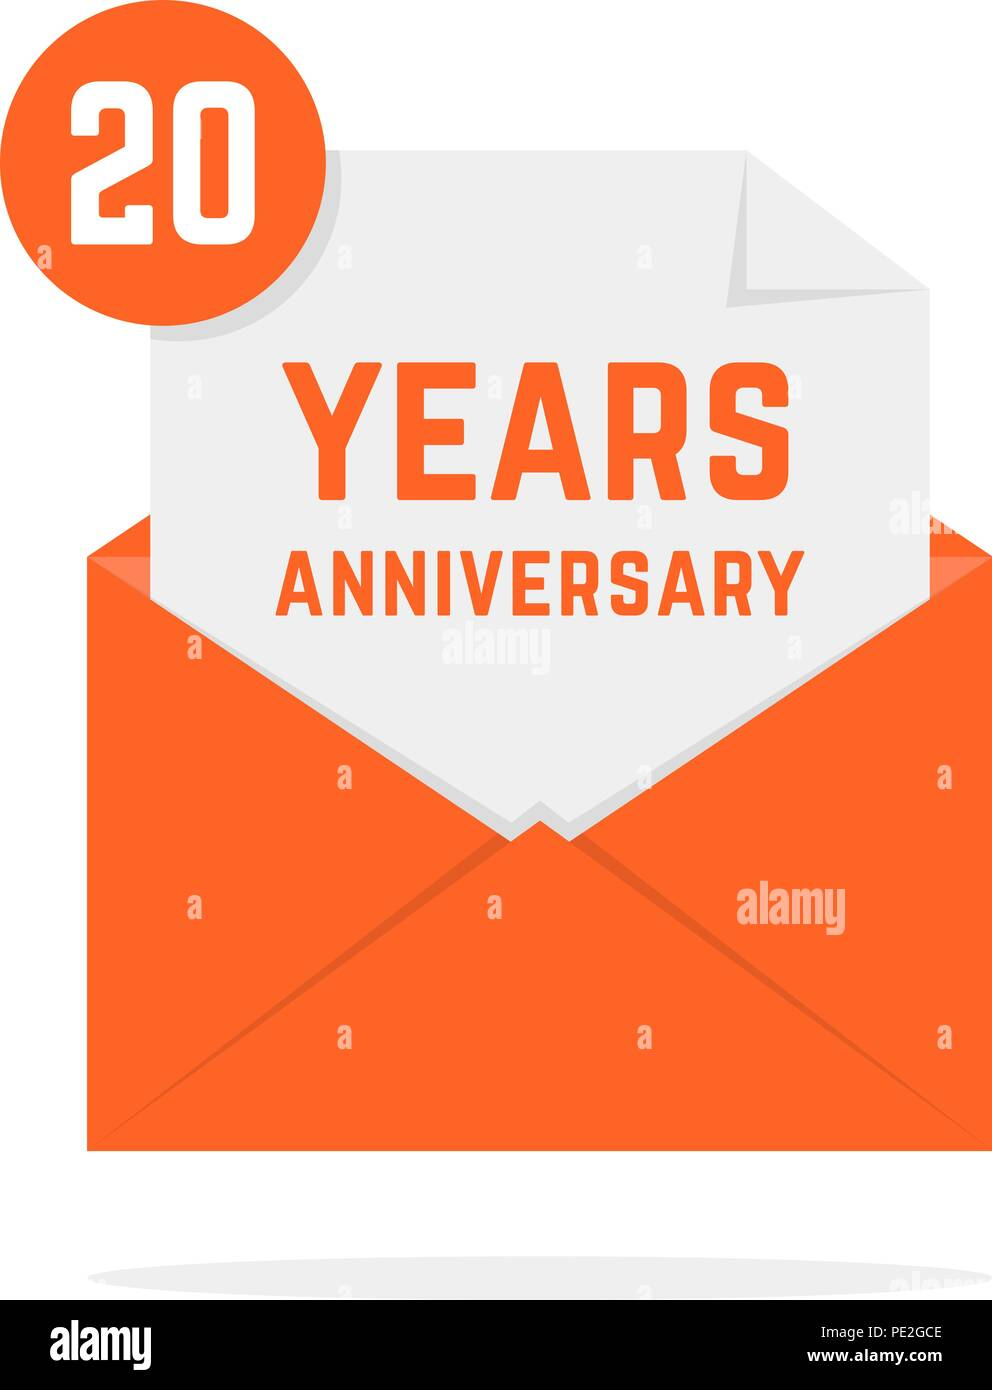 20 years anniversary icon in orange letter - Stock Vector